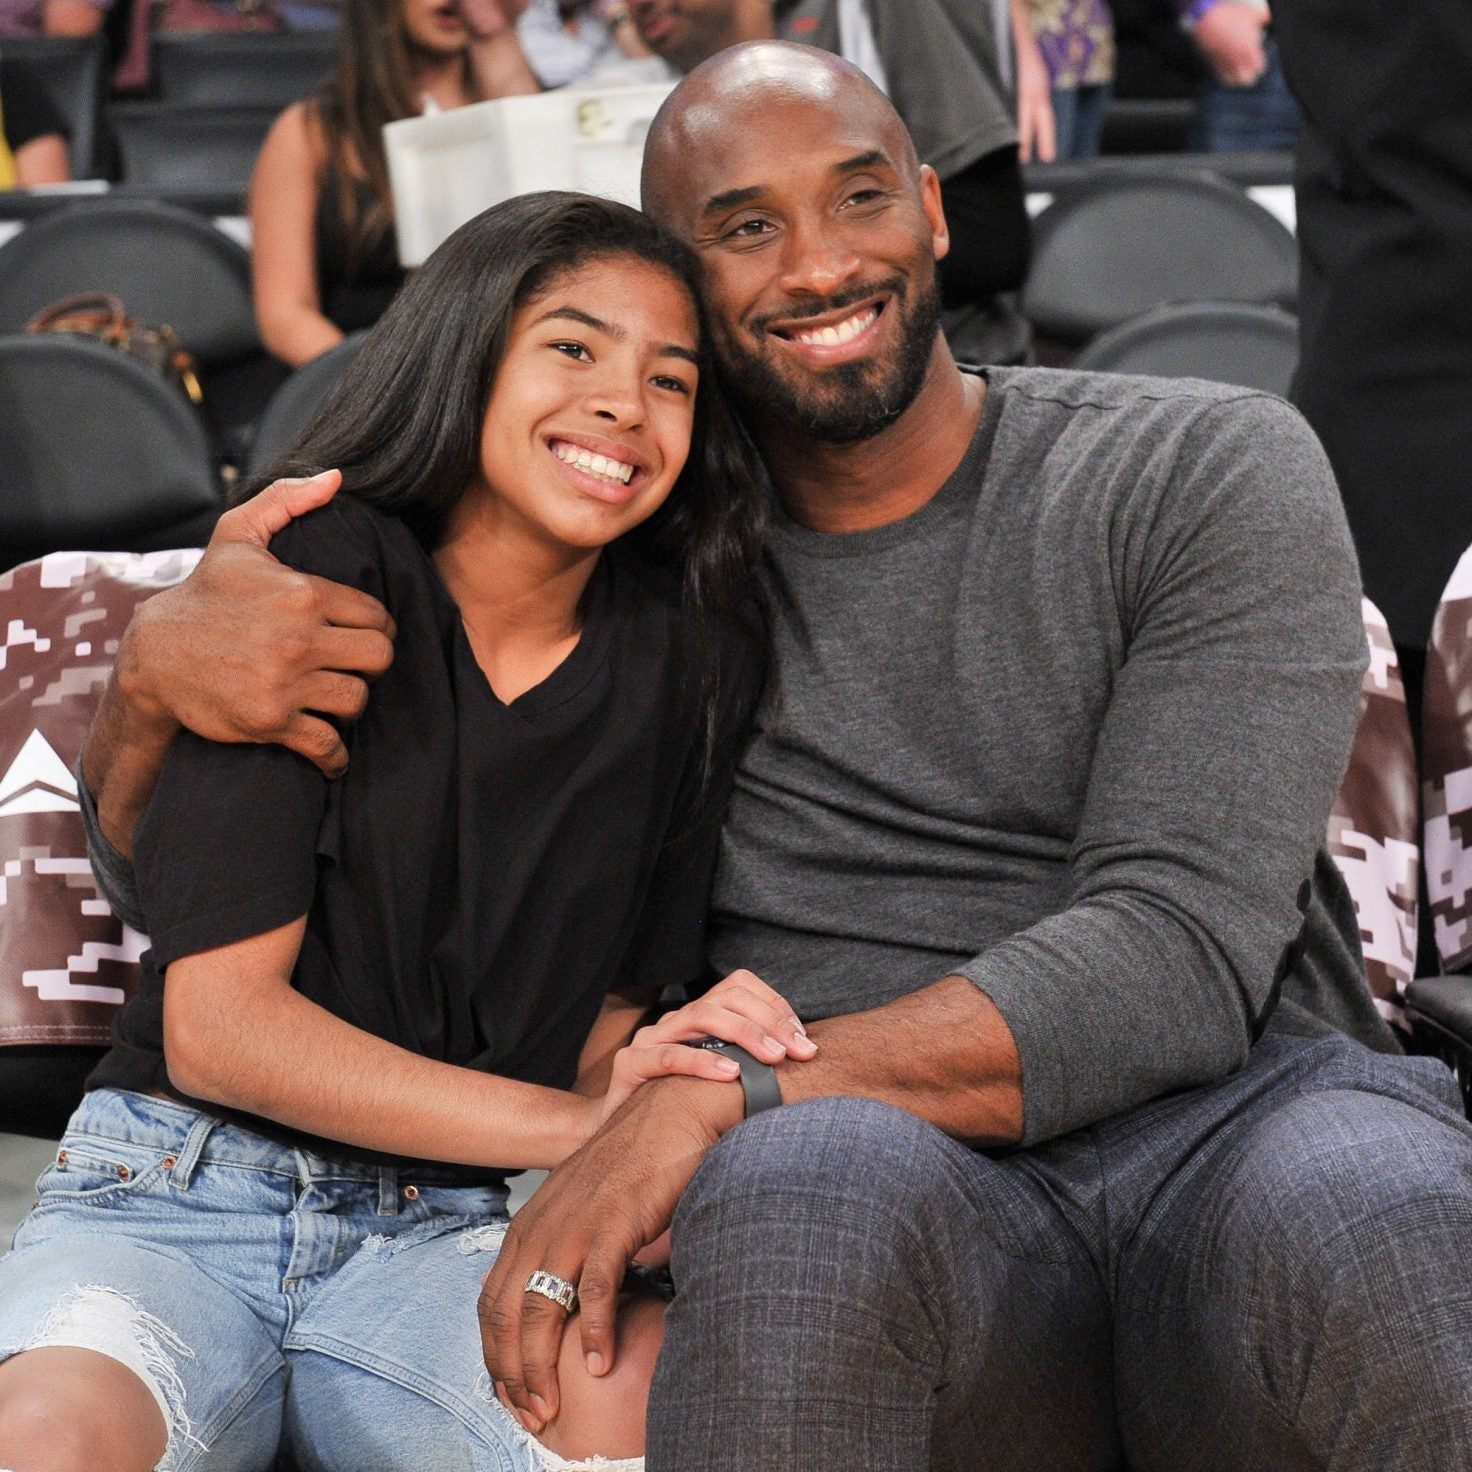 Kobe Bryant's Daughter Gianna, 13, Dies Alongside Father In Helicopter Crash